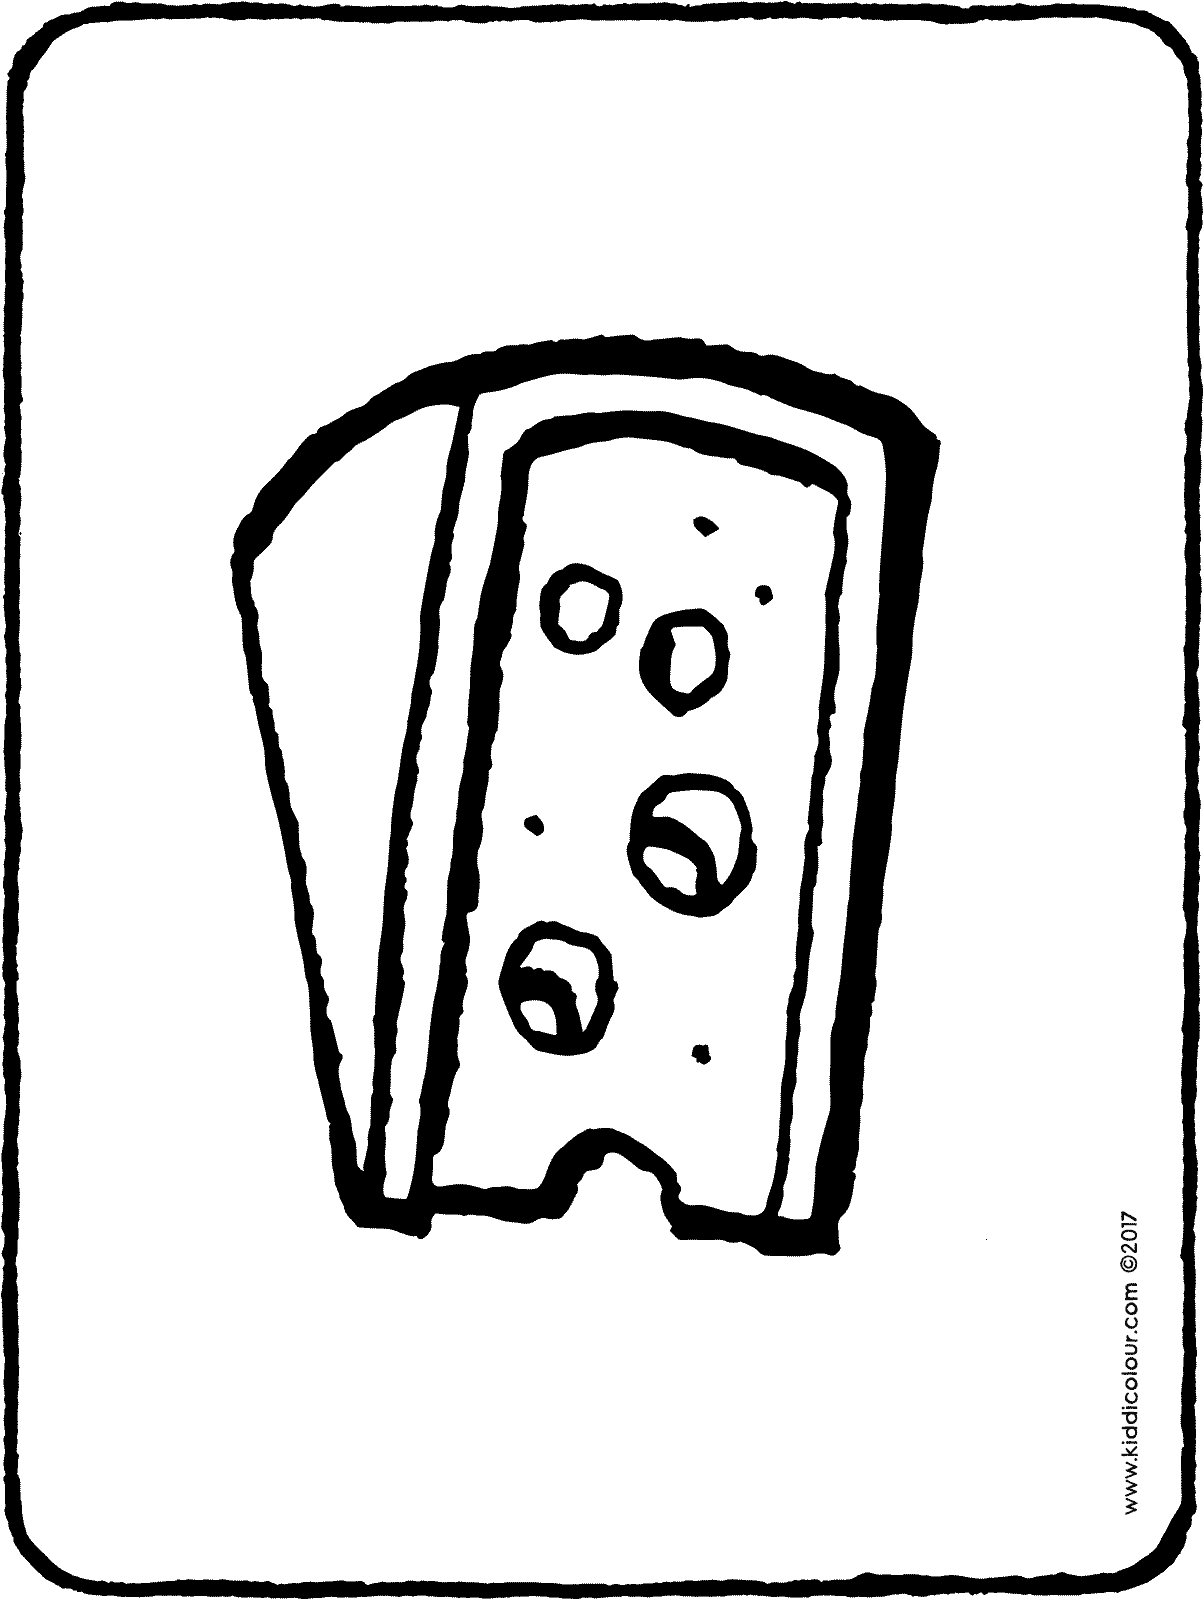 a piece of cheese colouring page drawing picture 01H